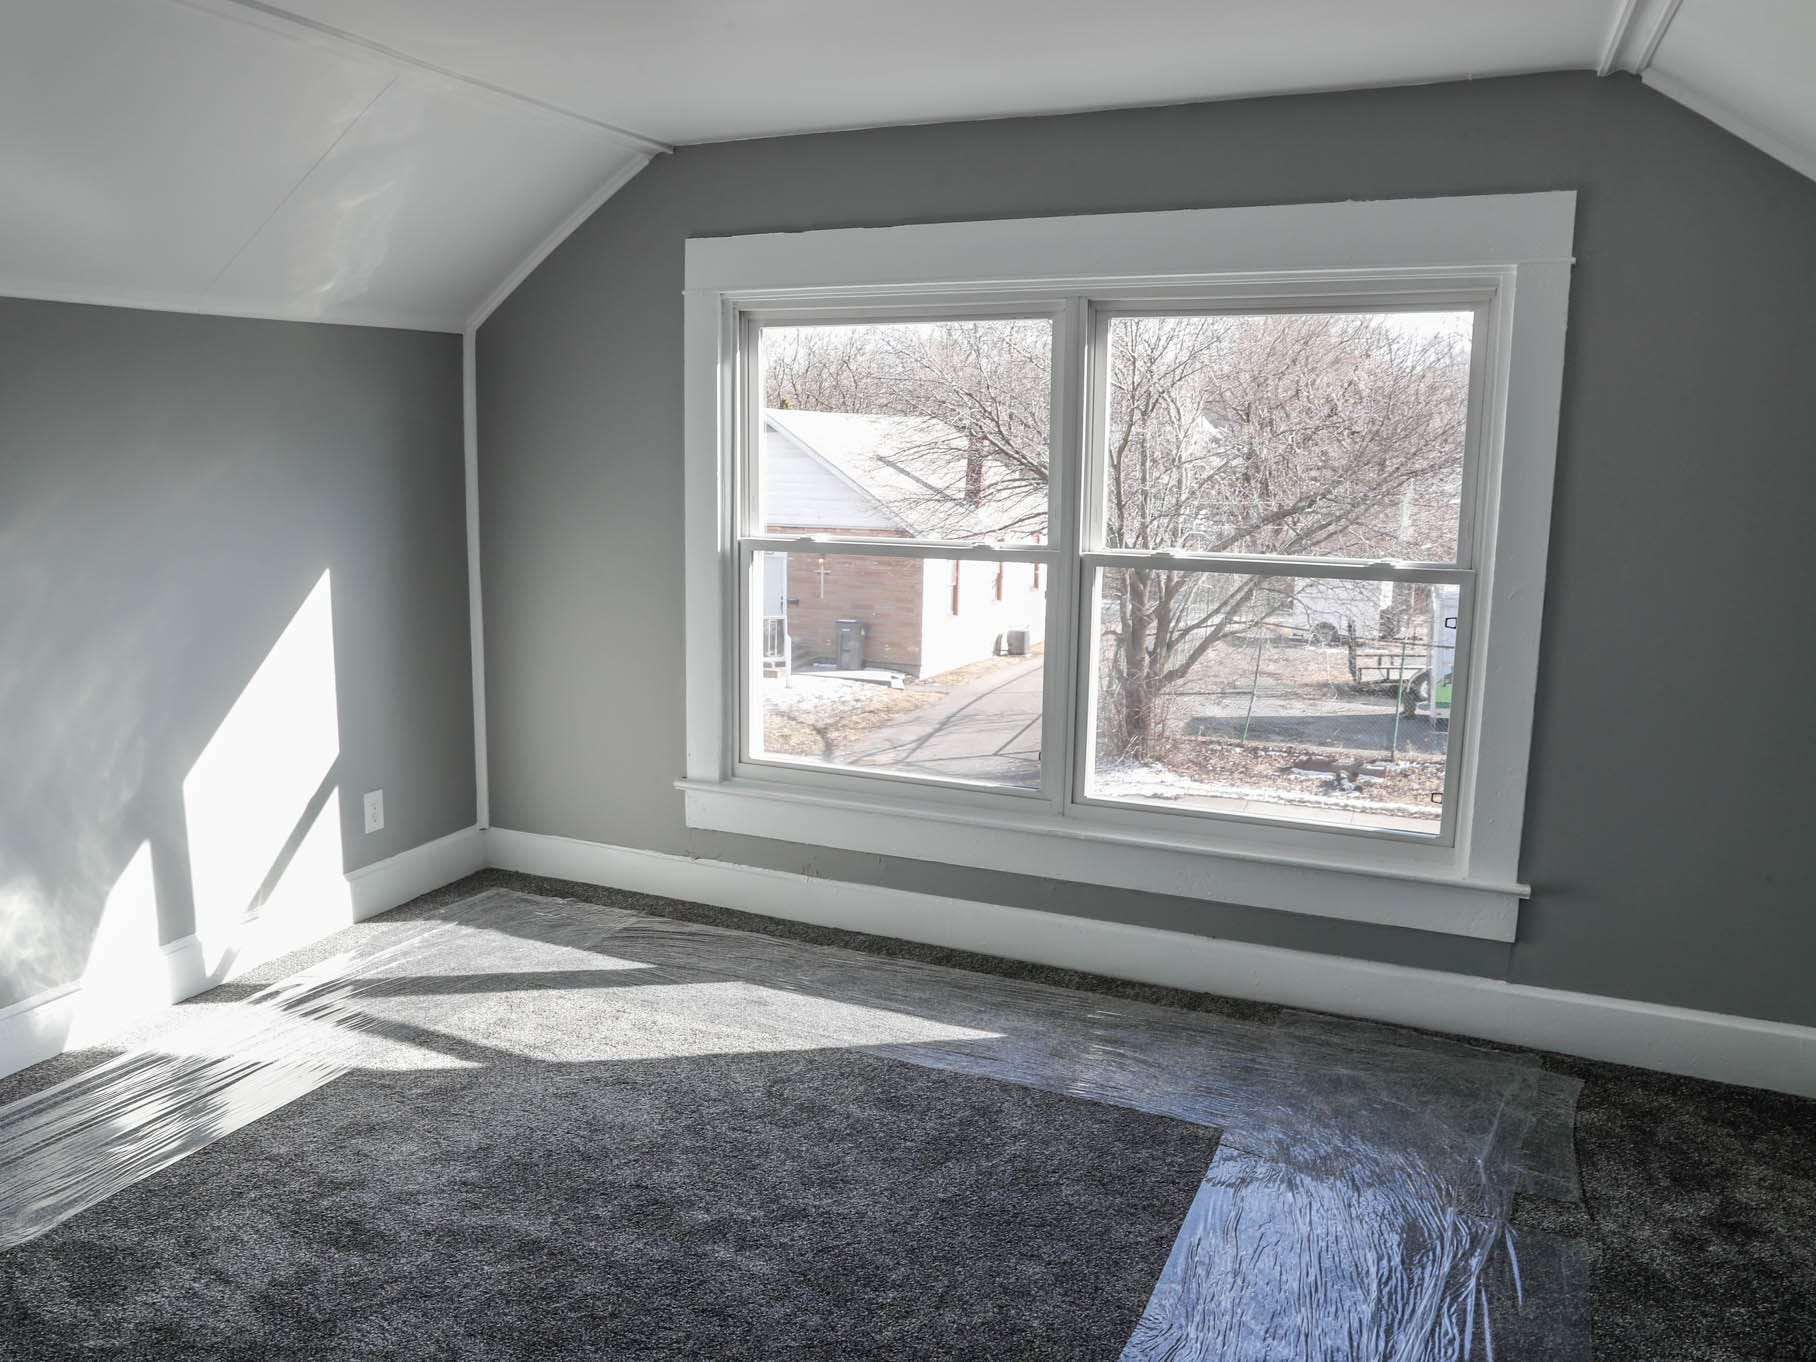 A newly remodeled home on Cruft St., affectionally known as the 'tan house' features unique bedrooms and is part of the Big Car Collaborative and Riley Area Development affordable artist home ownership program on the near south side of Indianapolis on Wednesday, March 6, 2019.  The goal of the Artist and Public Life Residency (APLR), will be to provide artists with home ownership while they work and collaborate with the greater community.